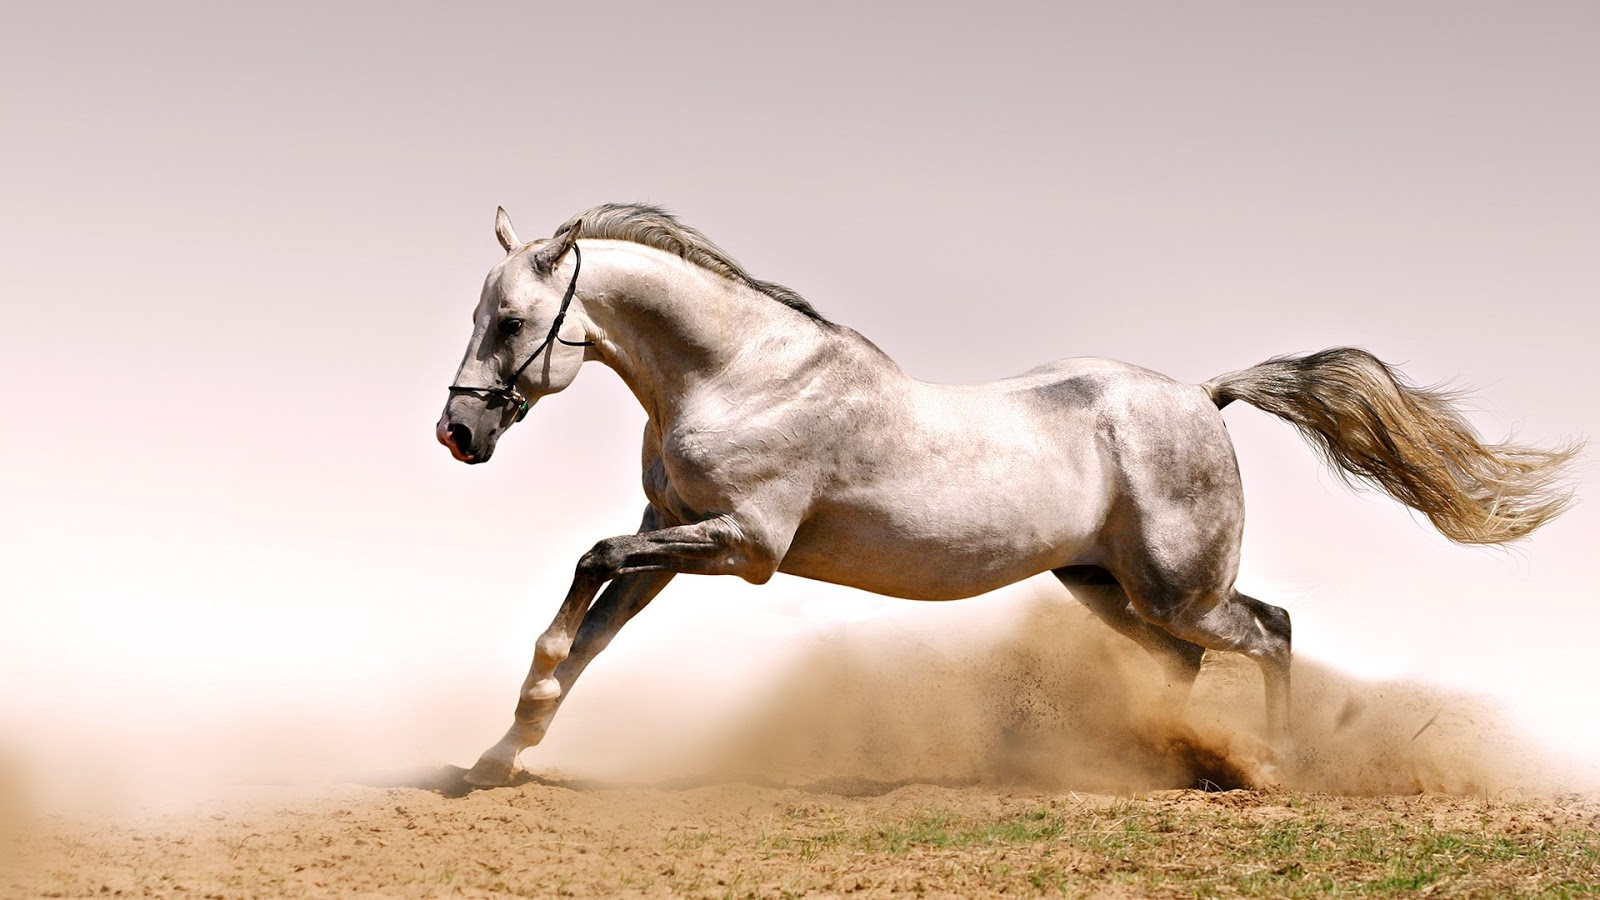 Fantastic   Wallpaper Horse Ultra Hd - Wild-White-Horse-HD-Wallpaper  Trends_6610082.jpg